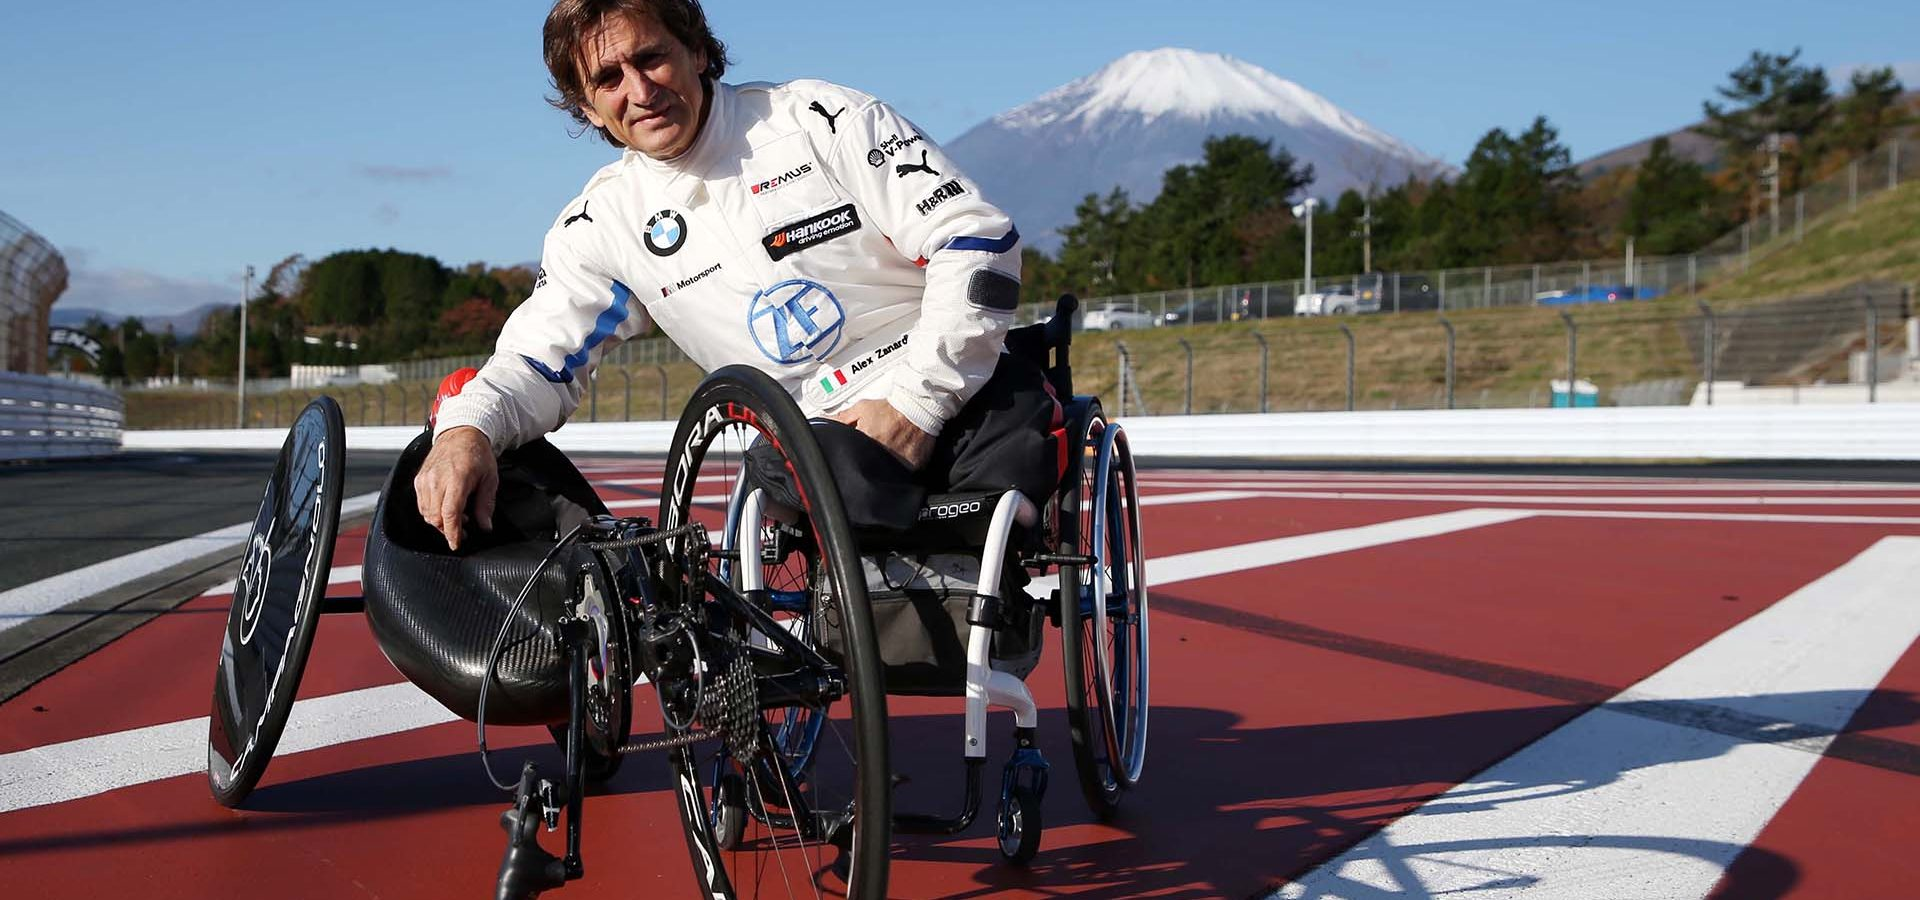 "Fuji International Speedway (JPN), 20th to 21st November 2019. BMW M Motorsport. ""SUPER GT x DTM Dream Race"". BMW works driver, BMW brand ambassador Alessandro Zanardi (ITA), practicing with his hand cycle."